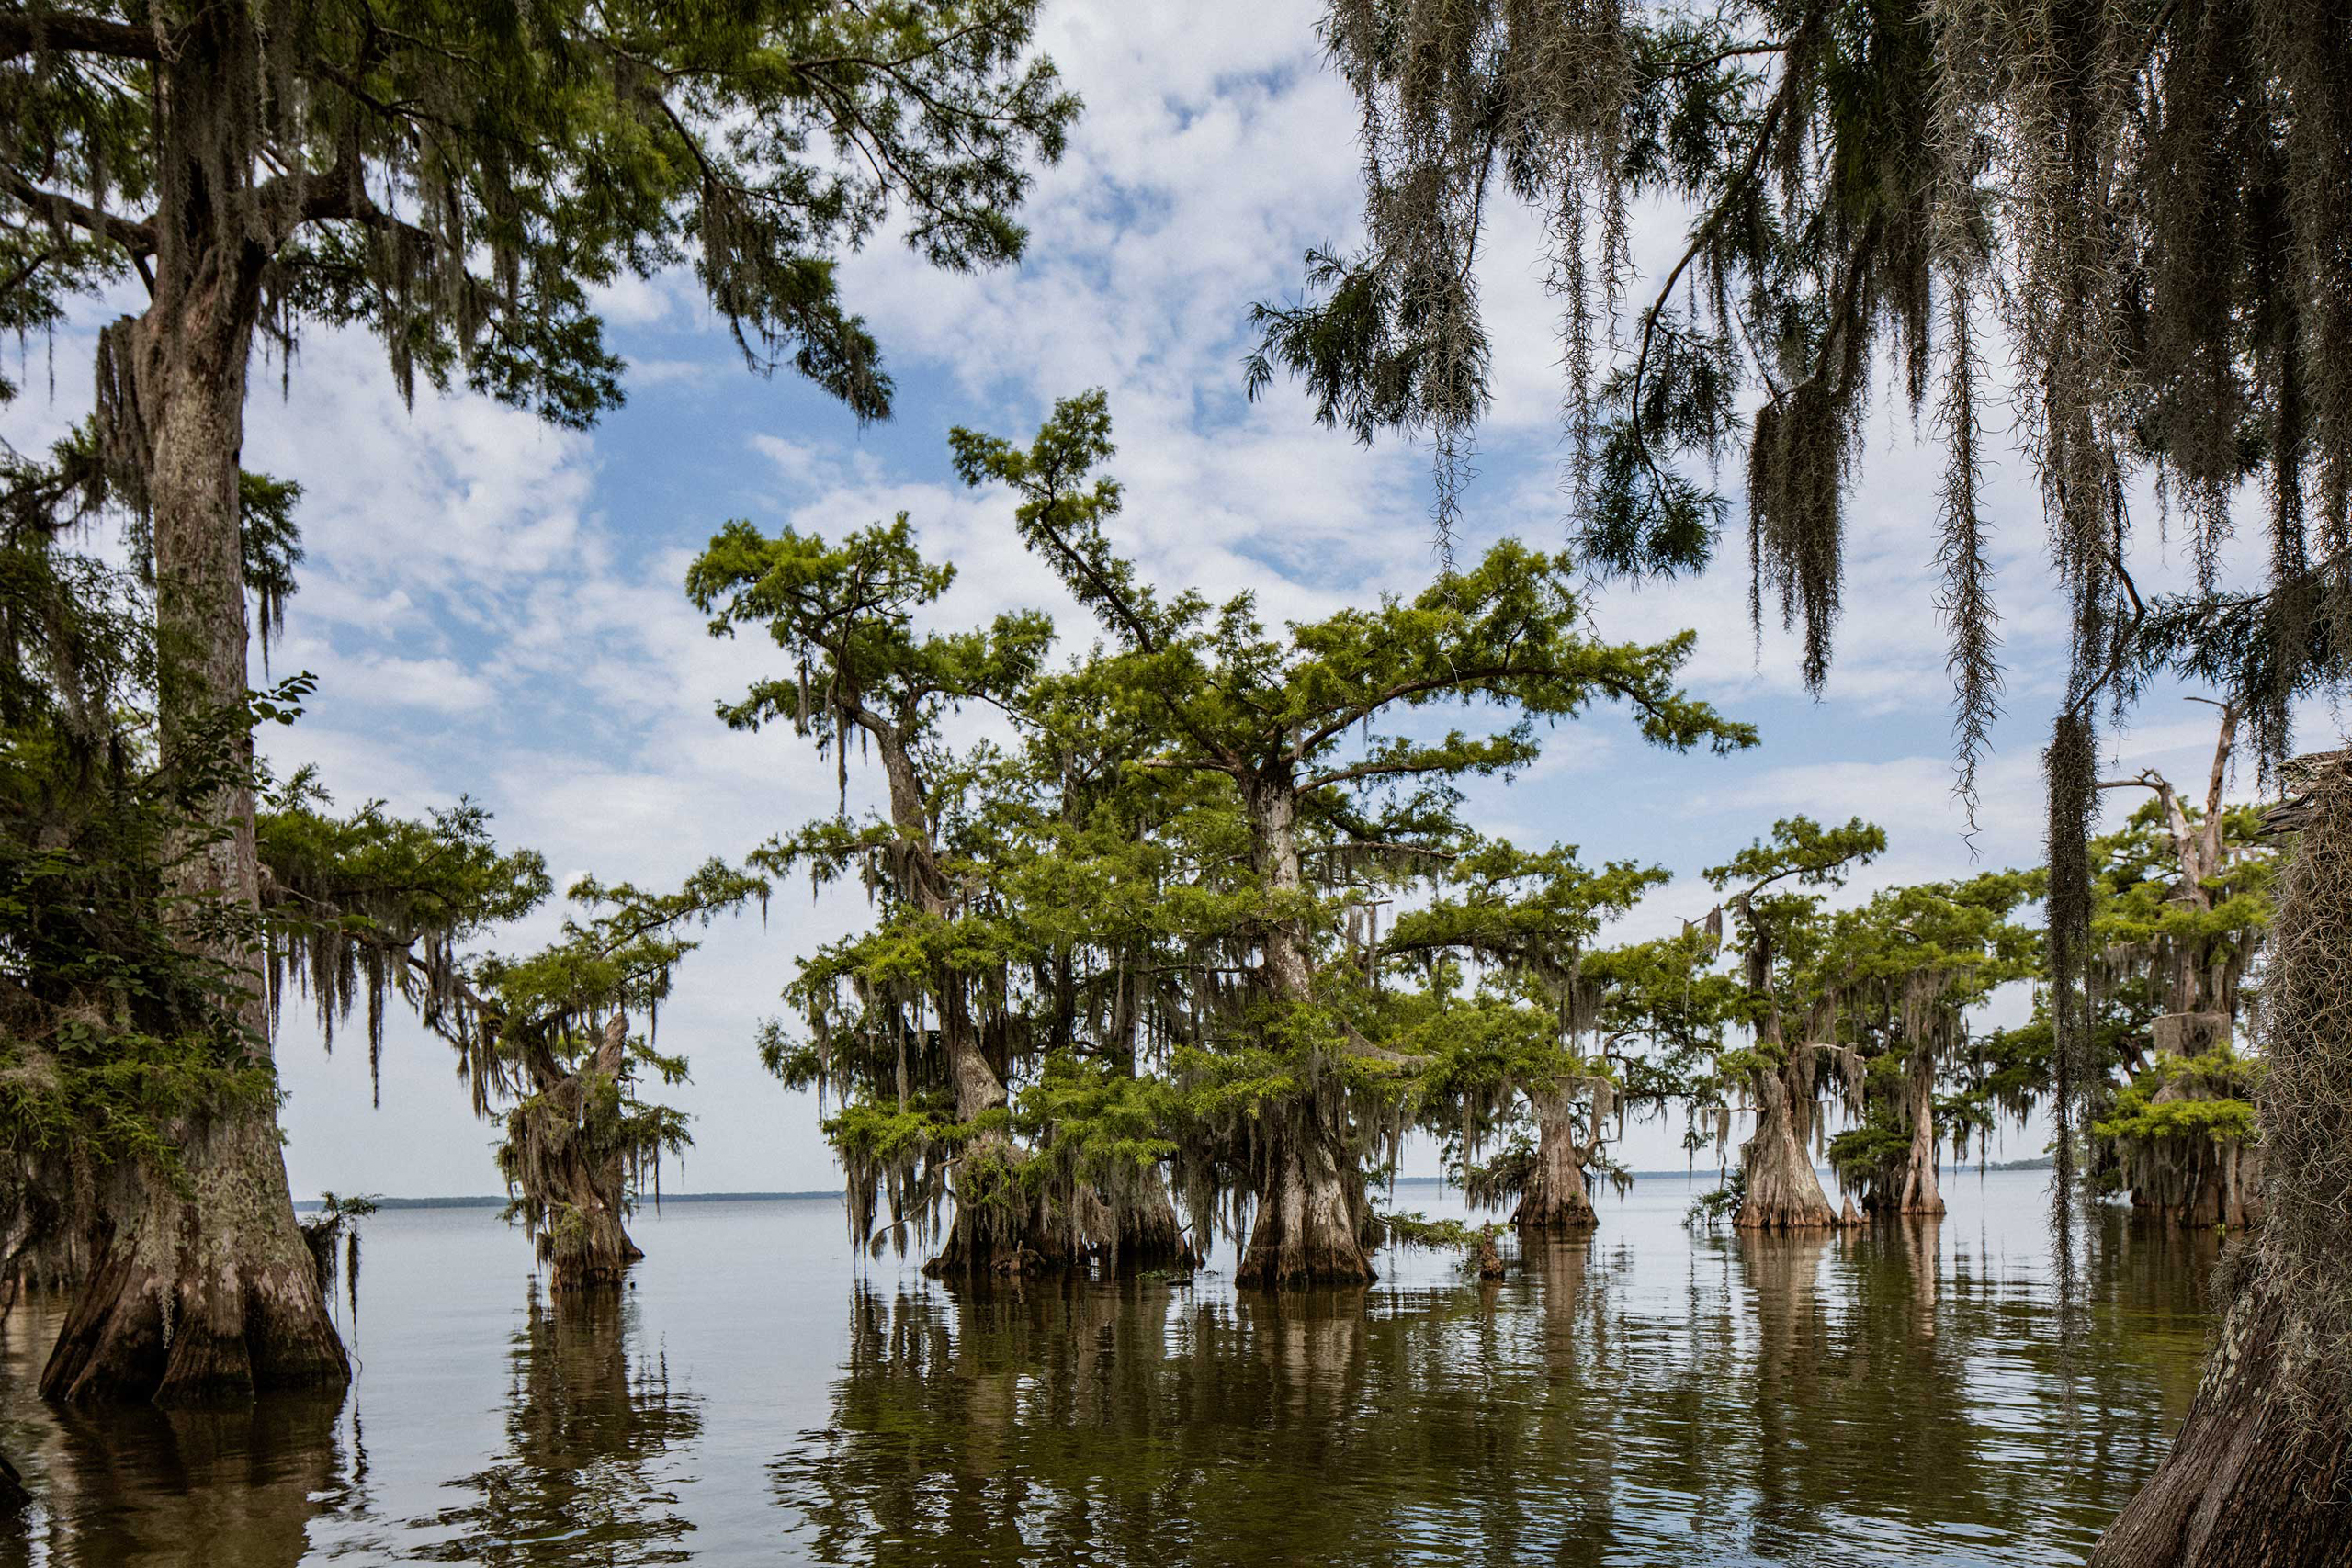 The Atchafalaya Basin, or Atchafalaya Swamp, is the largest wetland and swamp in the United States, photographed on June 9, 2016.